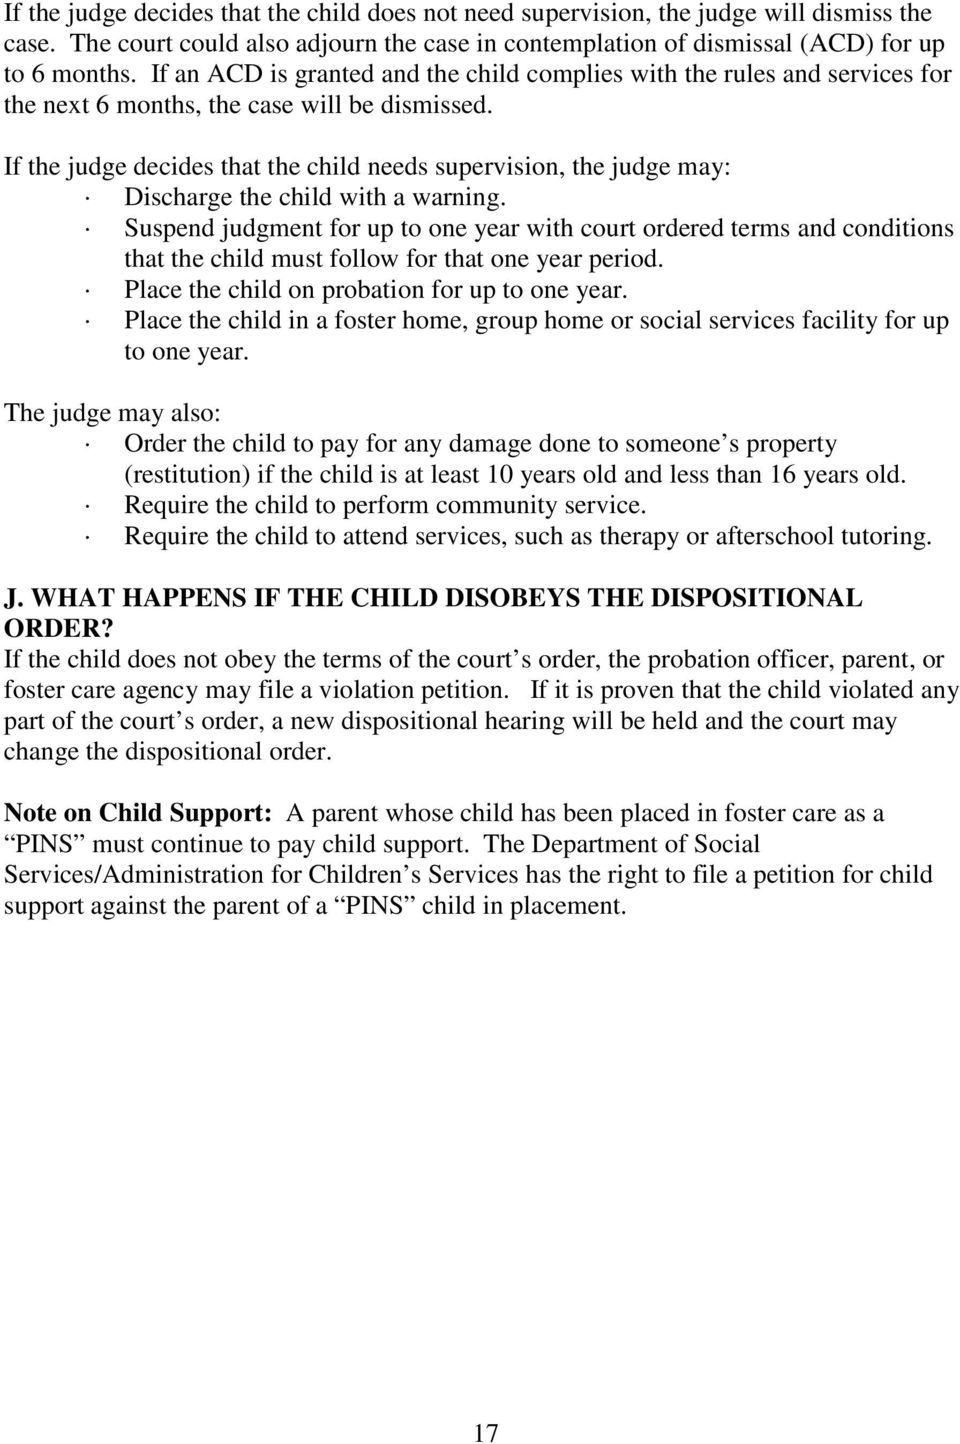 If the judge decides that the child needs supervision, the judge may: Discharge the child with a warning.